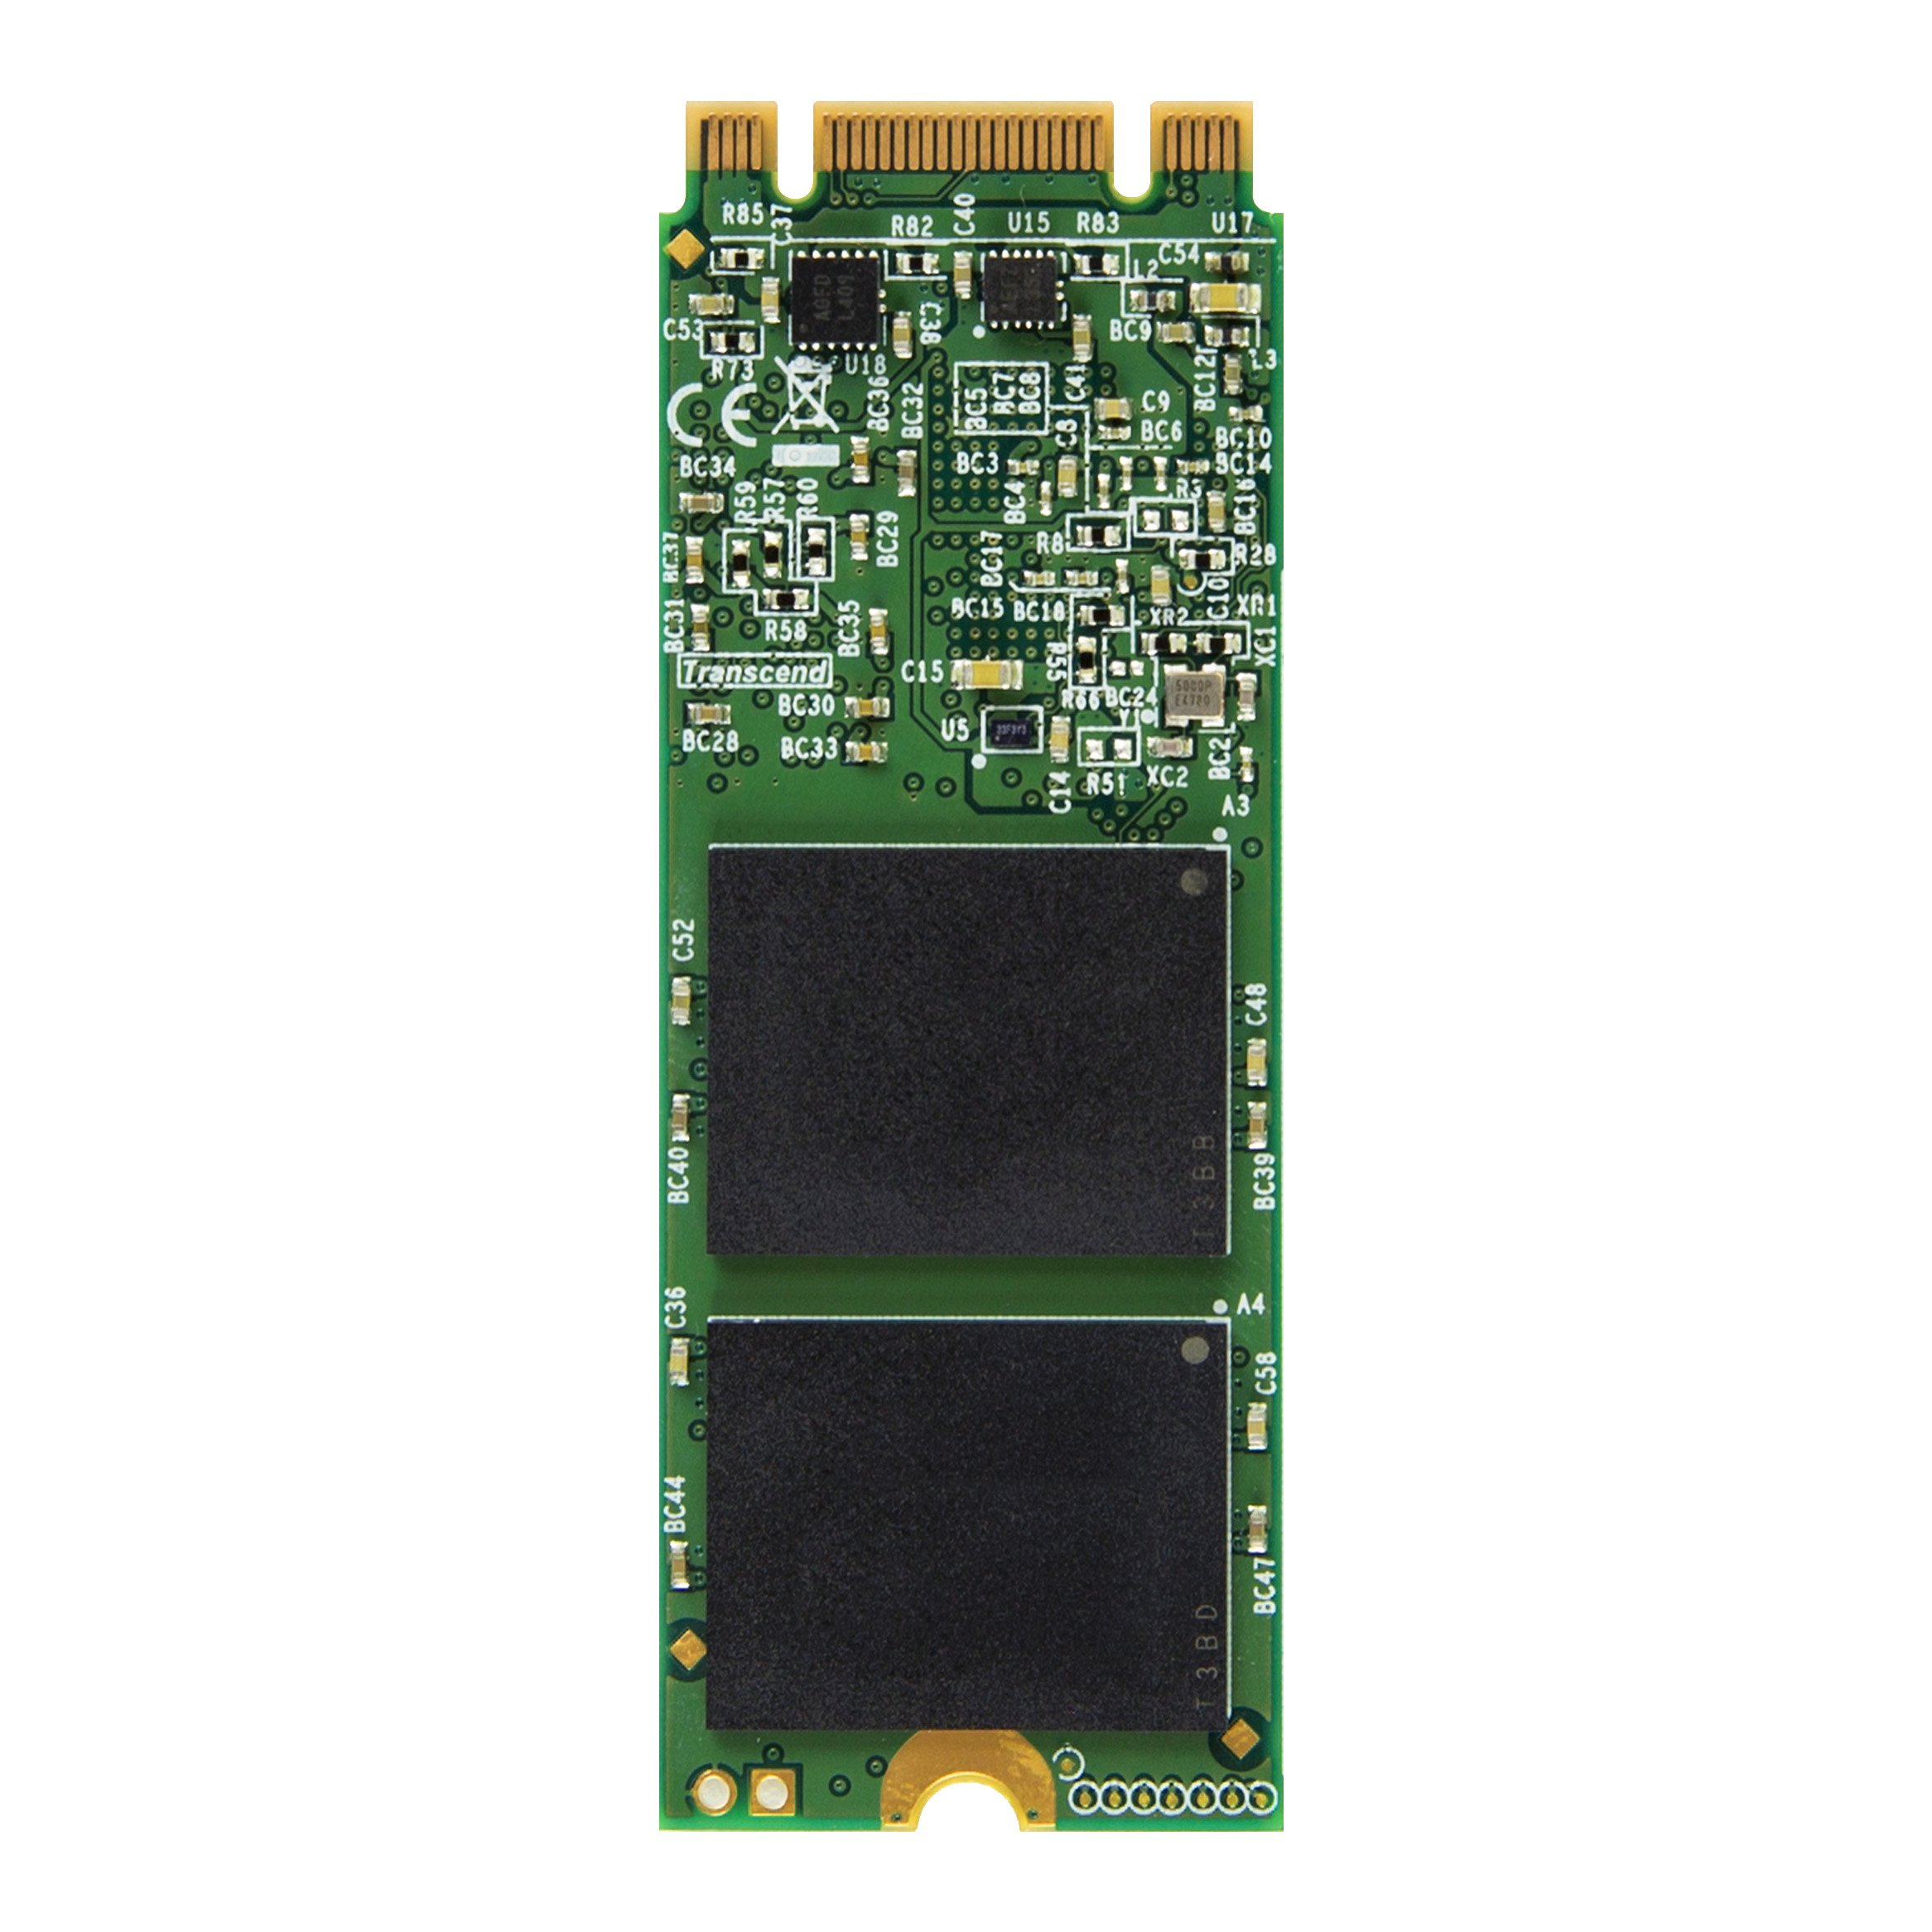 Transcend 256 GB SATA III MTS600 60 mm M.2 SSD (TS256GMTS600) by Transcend (Image #2)